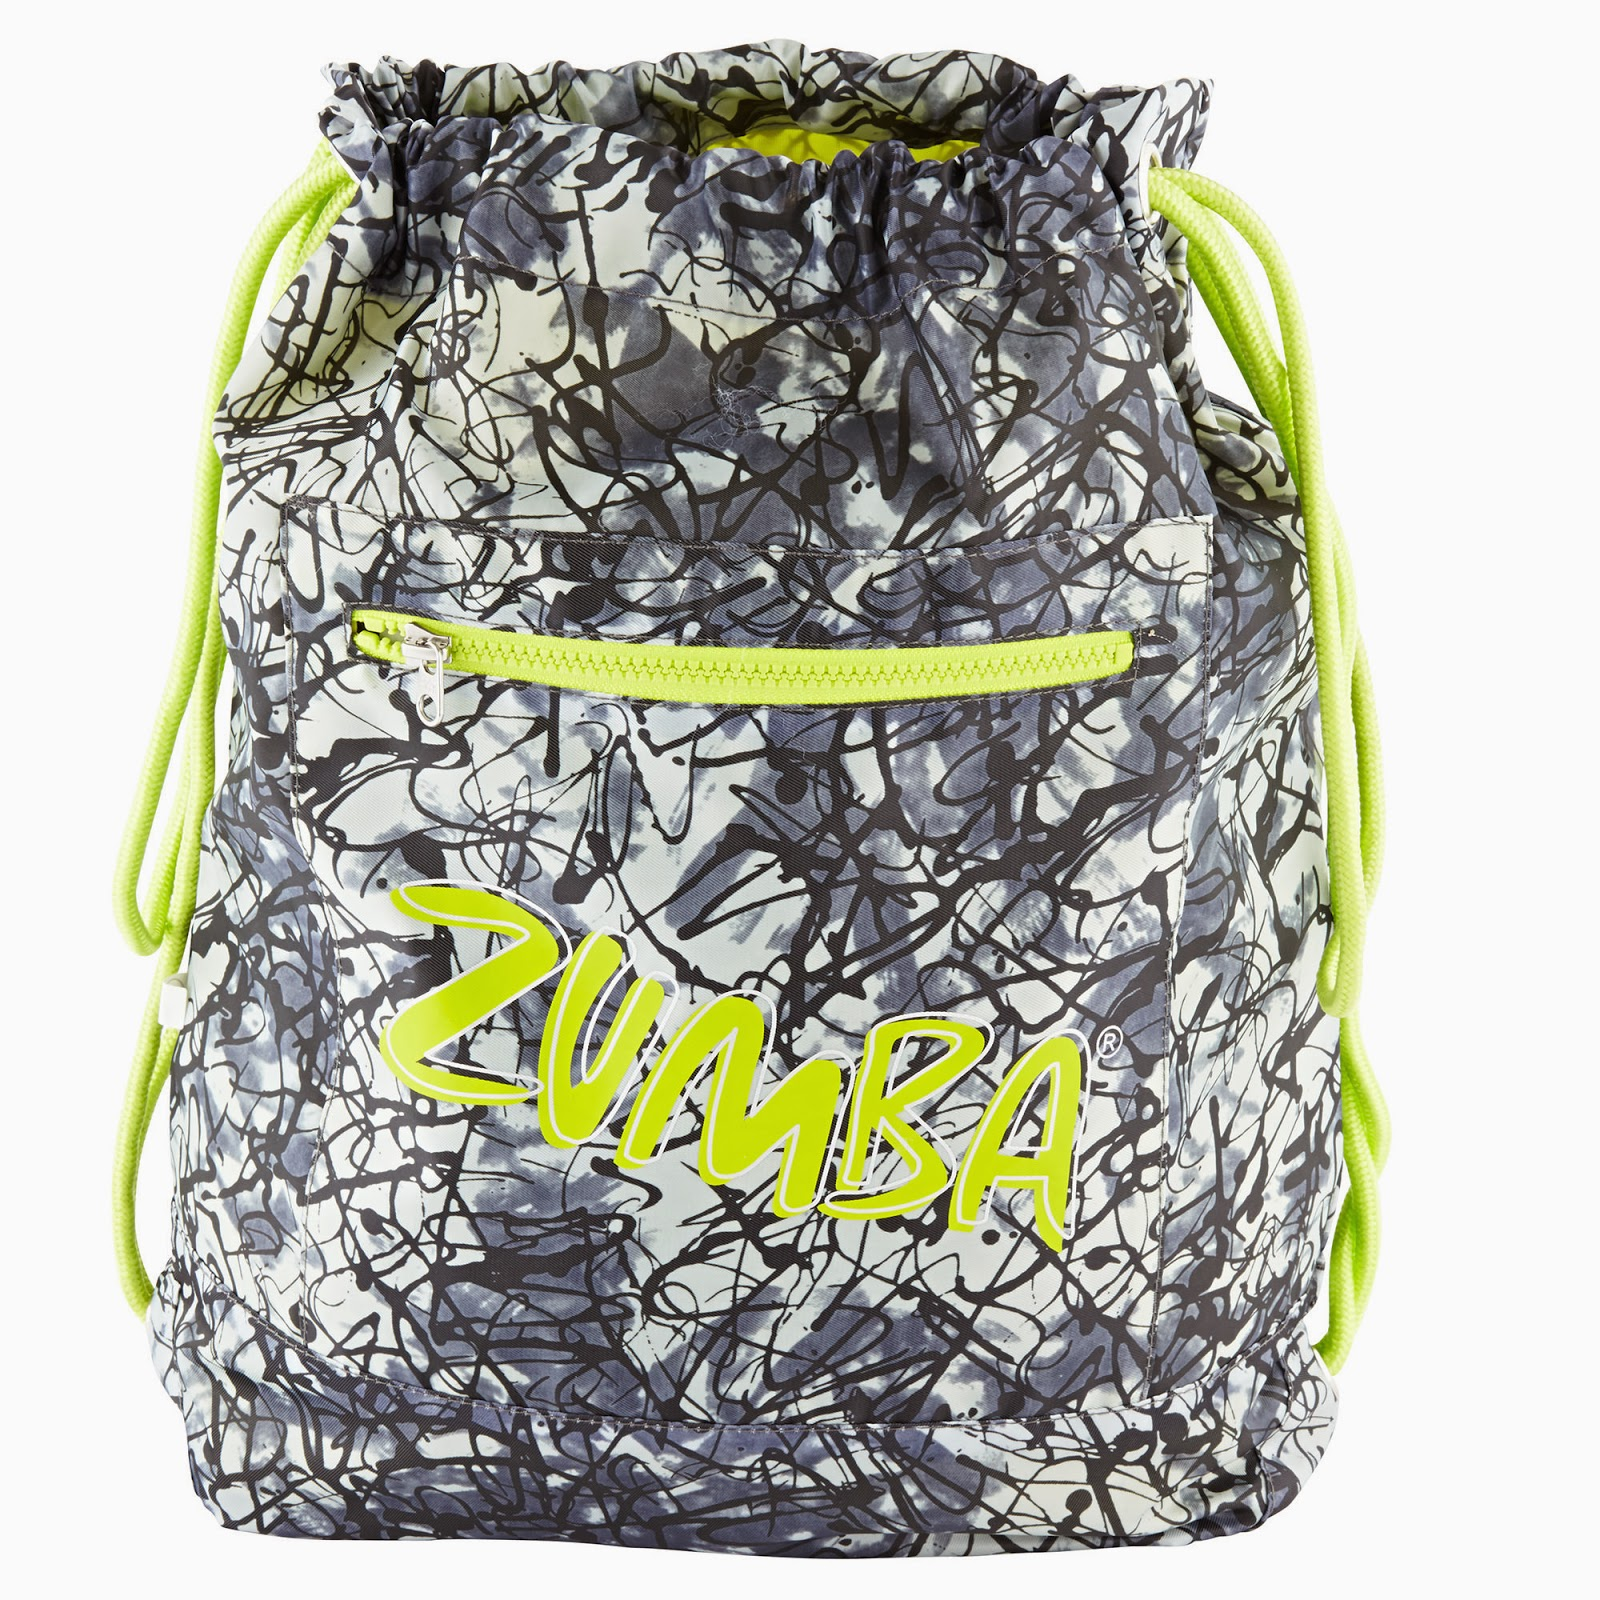 http://www.zumba.com/en-US/store-zin/US/product/cant-touch-this-bag?color=Smoke